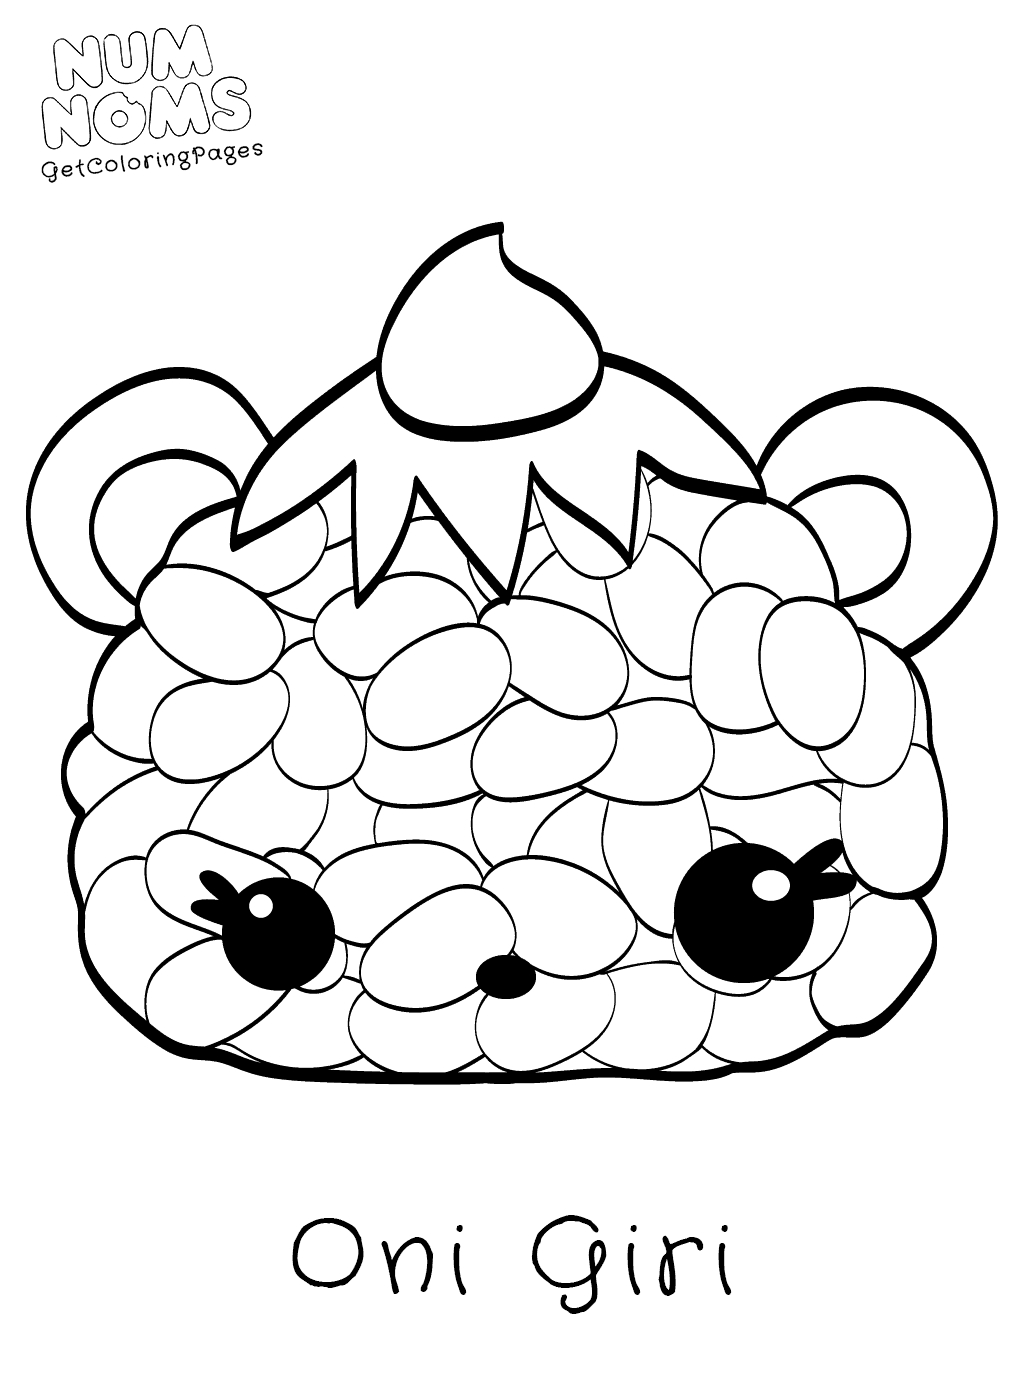 Num Nom Coloring Pages - Colouring Pages Num Noms Num Noms toy Coloring Pages